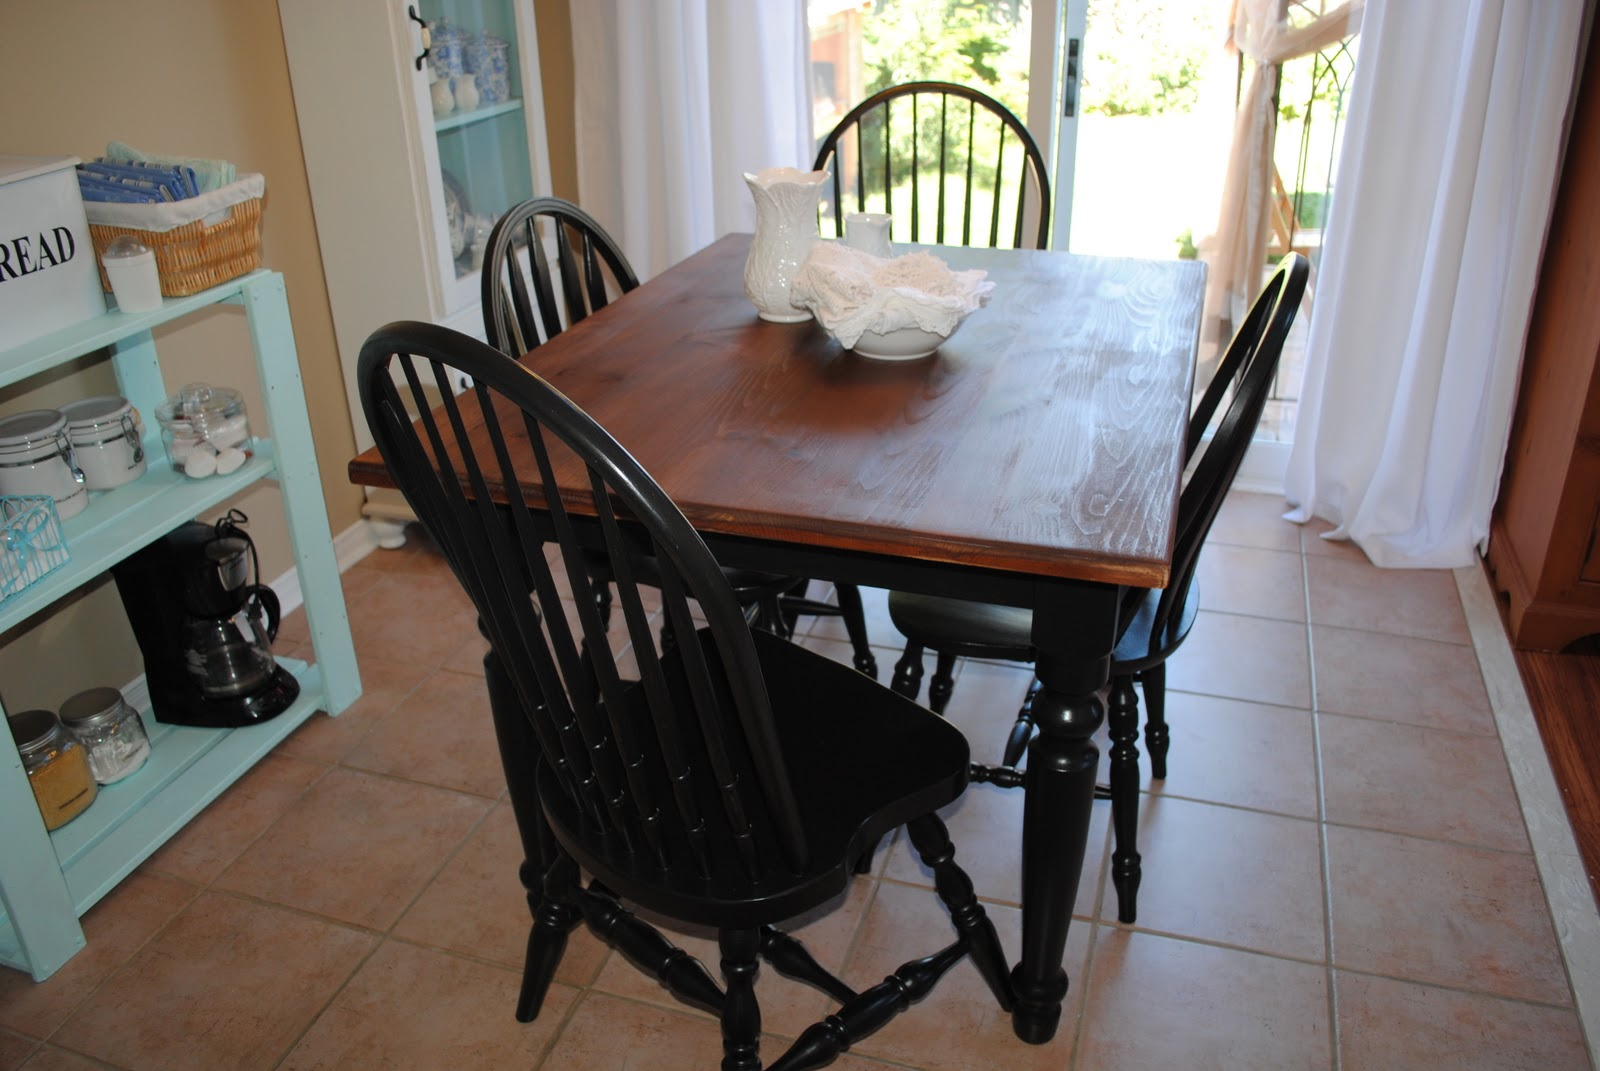 Black farmhouse chairs - I Also Like Mixing Black With Plain Or Scrubbed Pine Like In Our Dining Room While This Is Too Country For Some It Really Appeals To Me